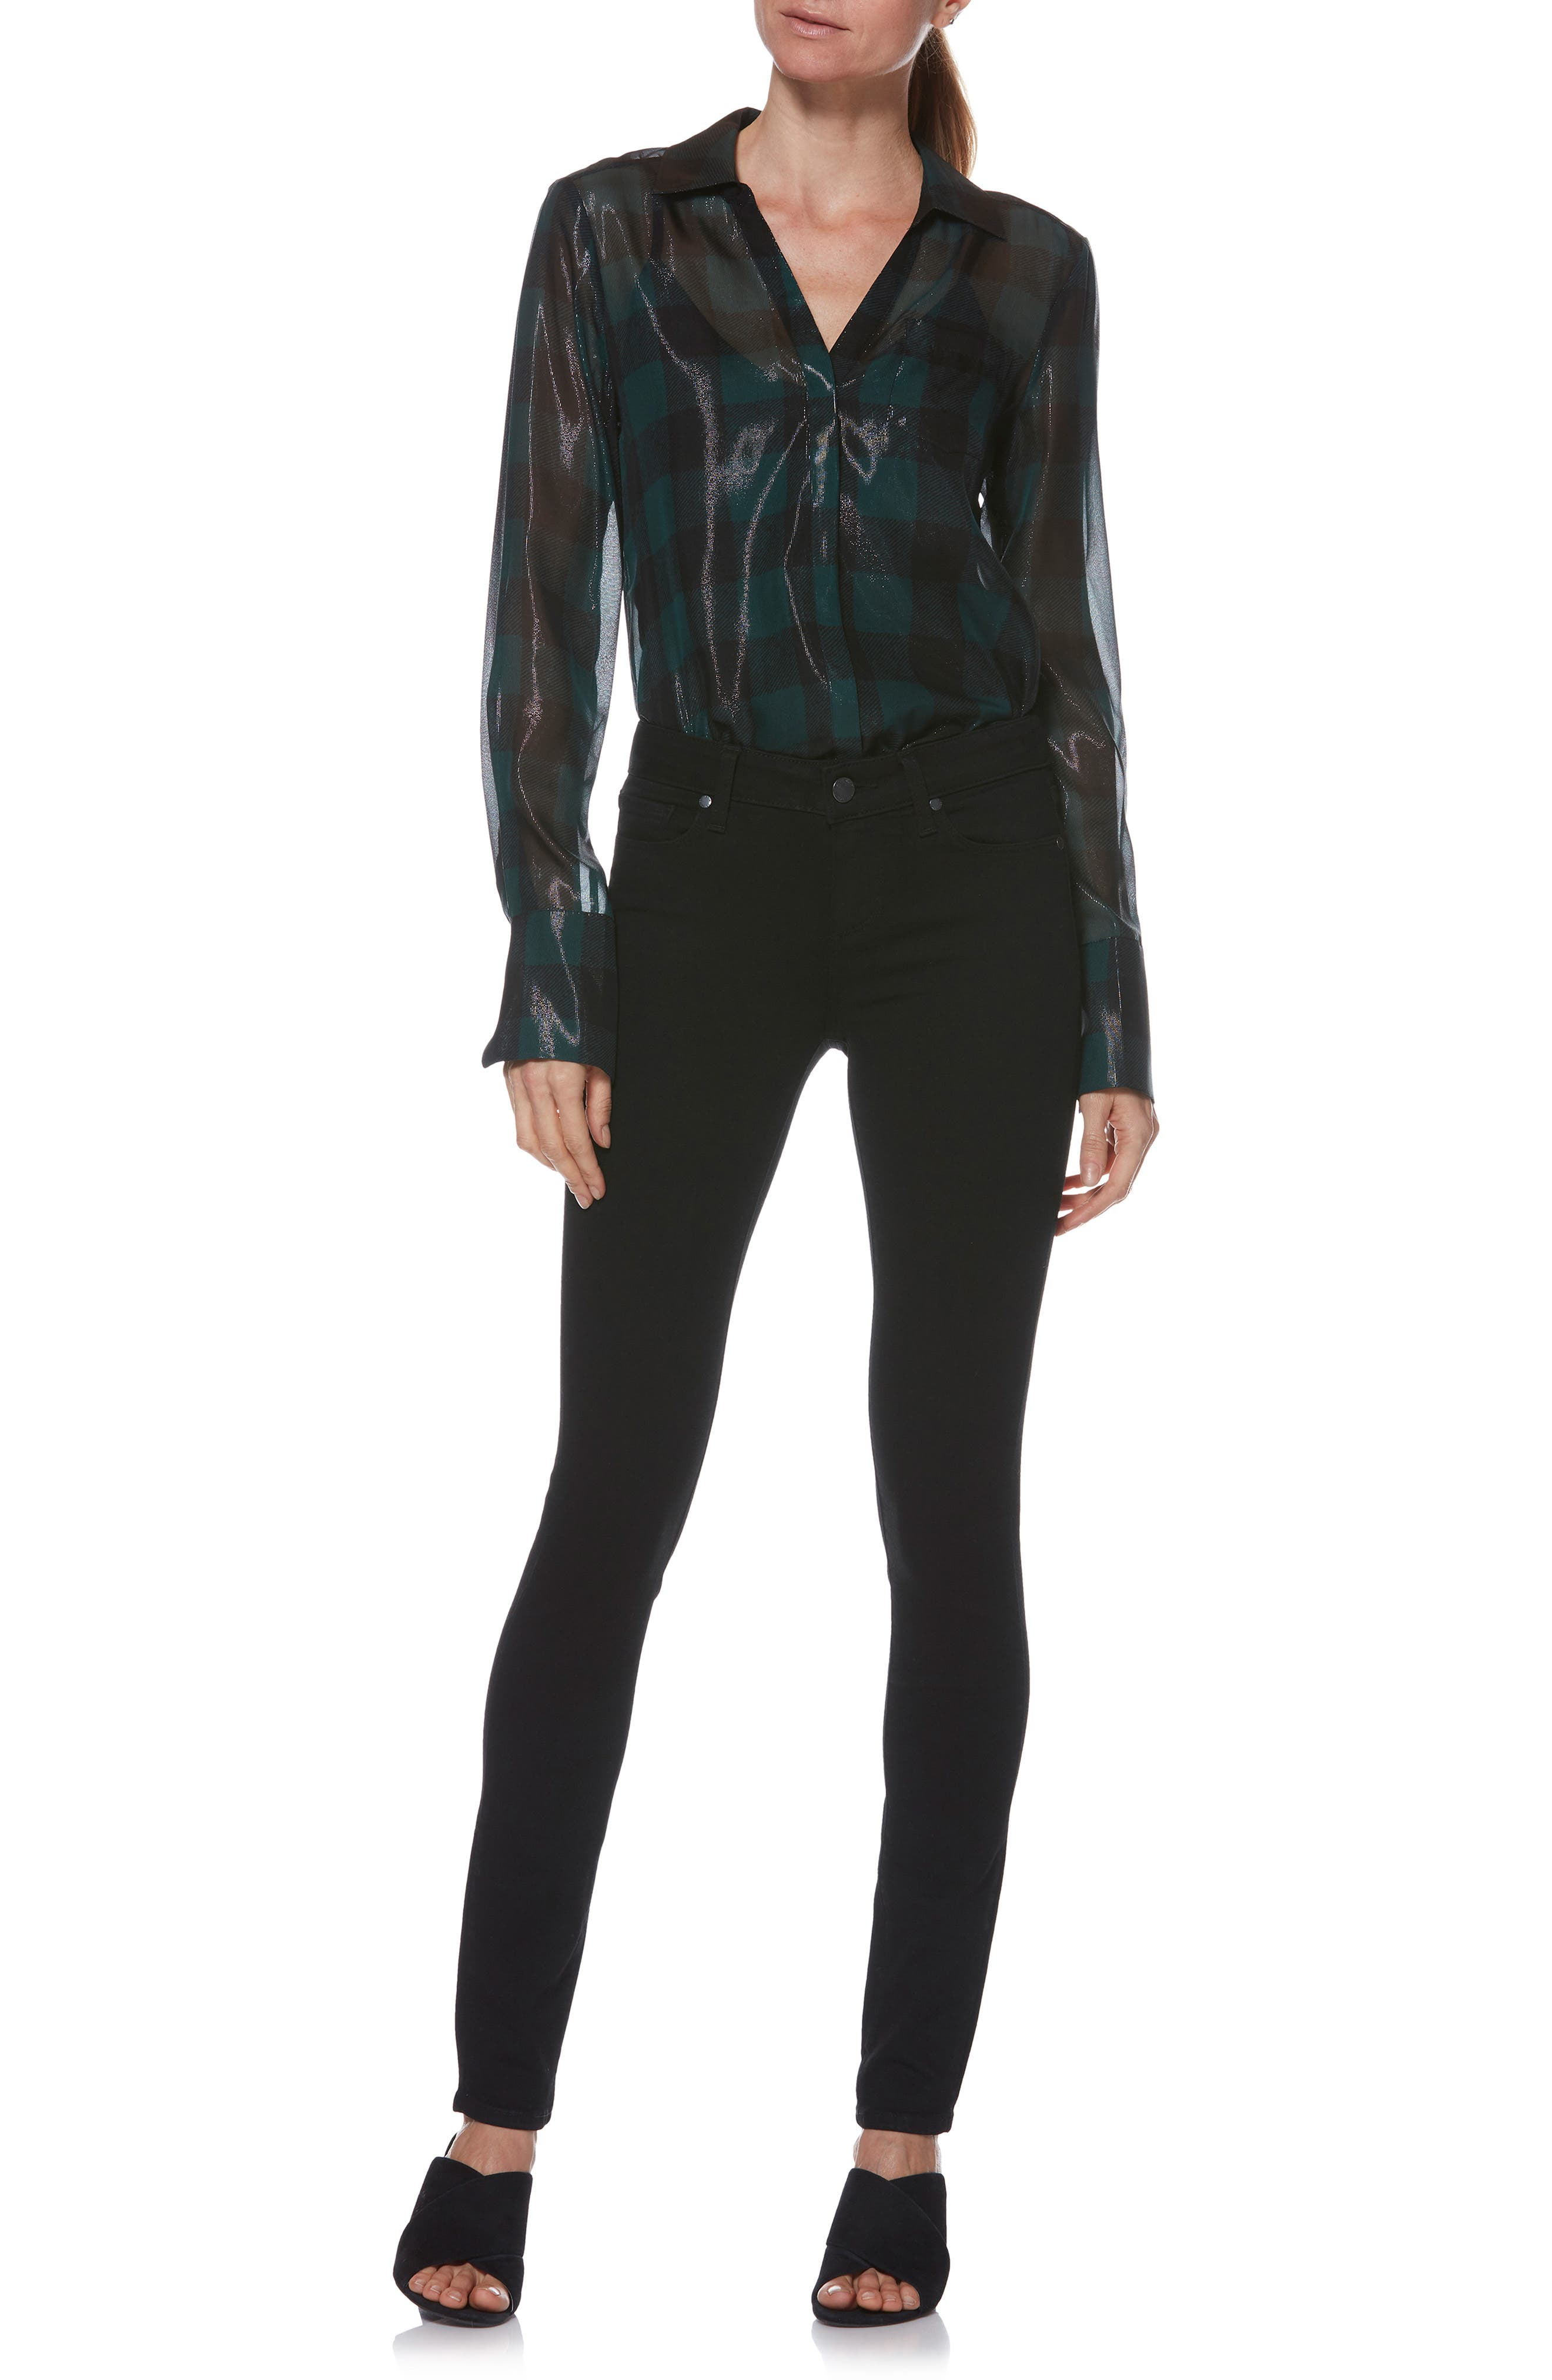 PAIGE, Transcend - Skyline Skinny Jeans, Alternate thumbnail 14, color, BLACK SHADOW